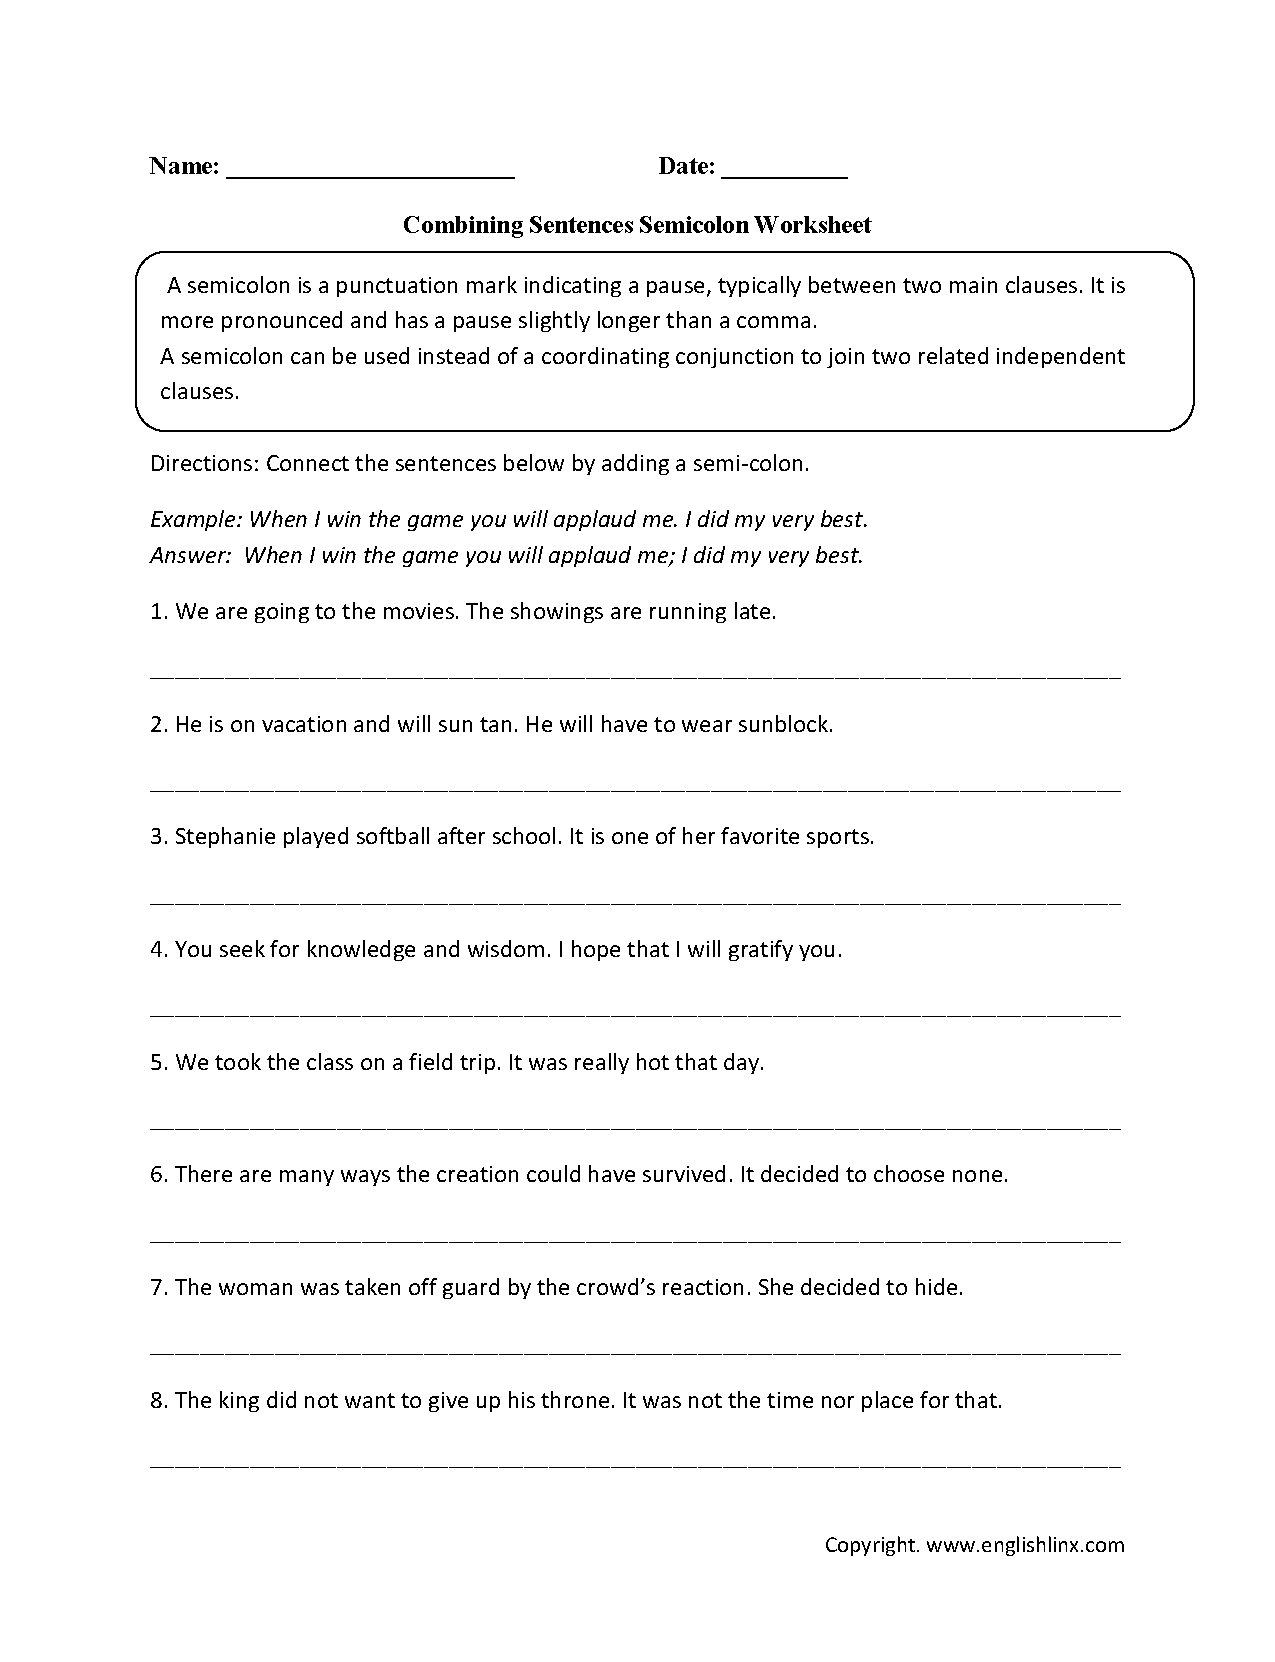 Combining sentences worksheet with answers